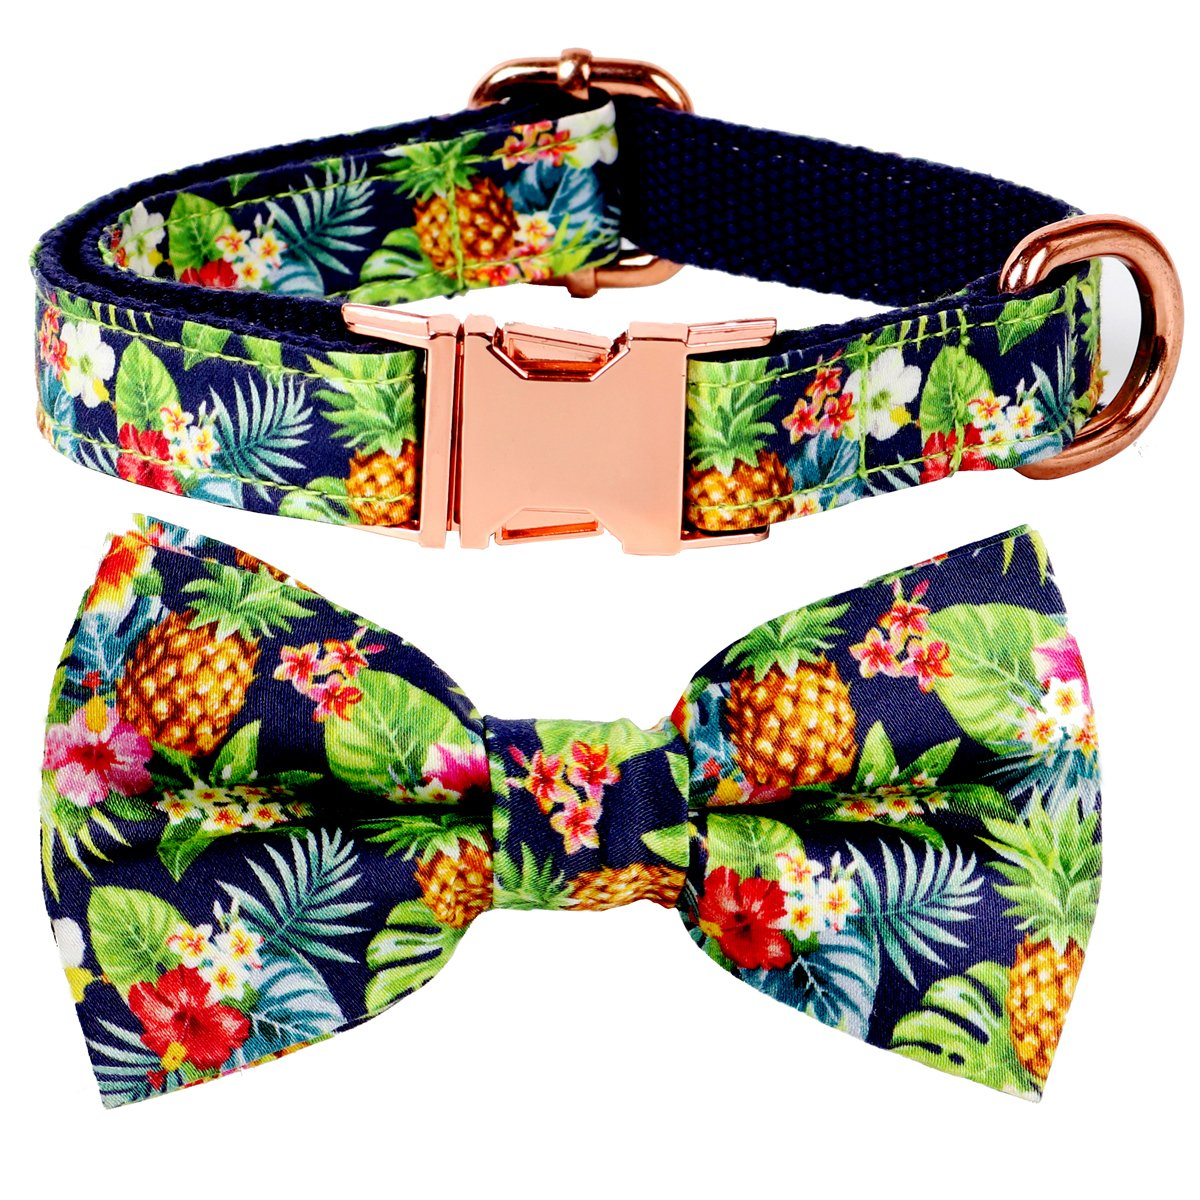 Csspet Pineapple Cat and Dog Collar Bow Tie, Detachable Bowtie, Adjustable Collar for XS Small Dog Cat